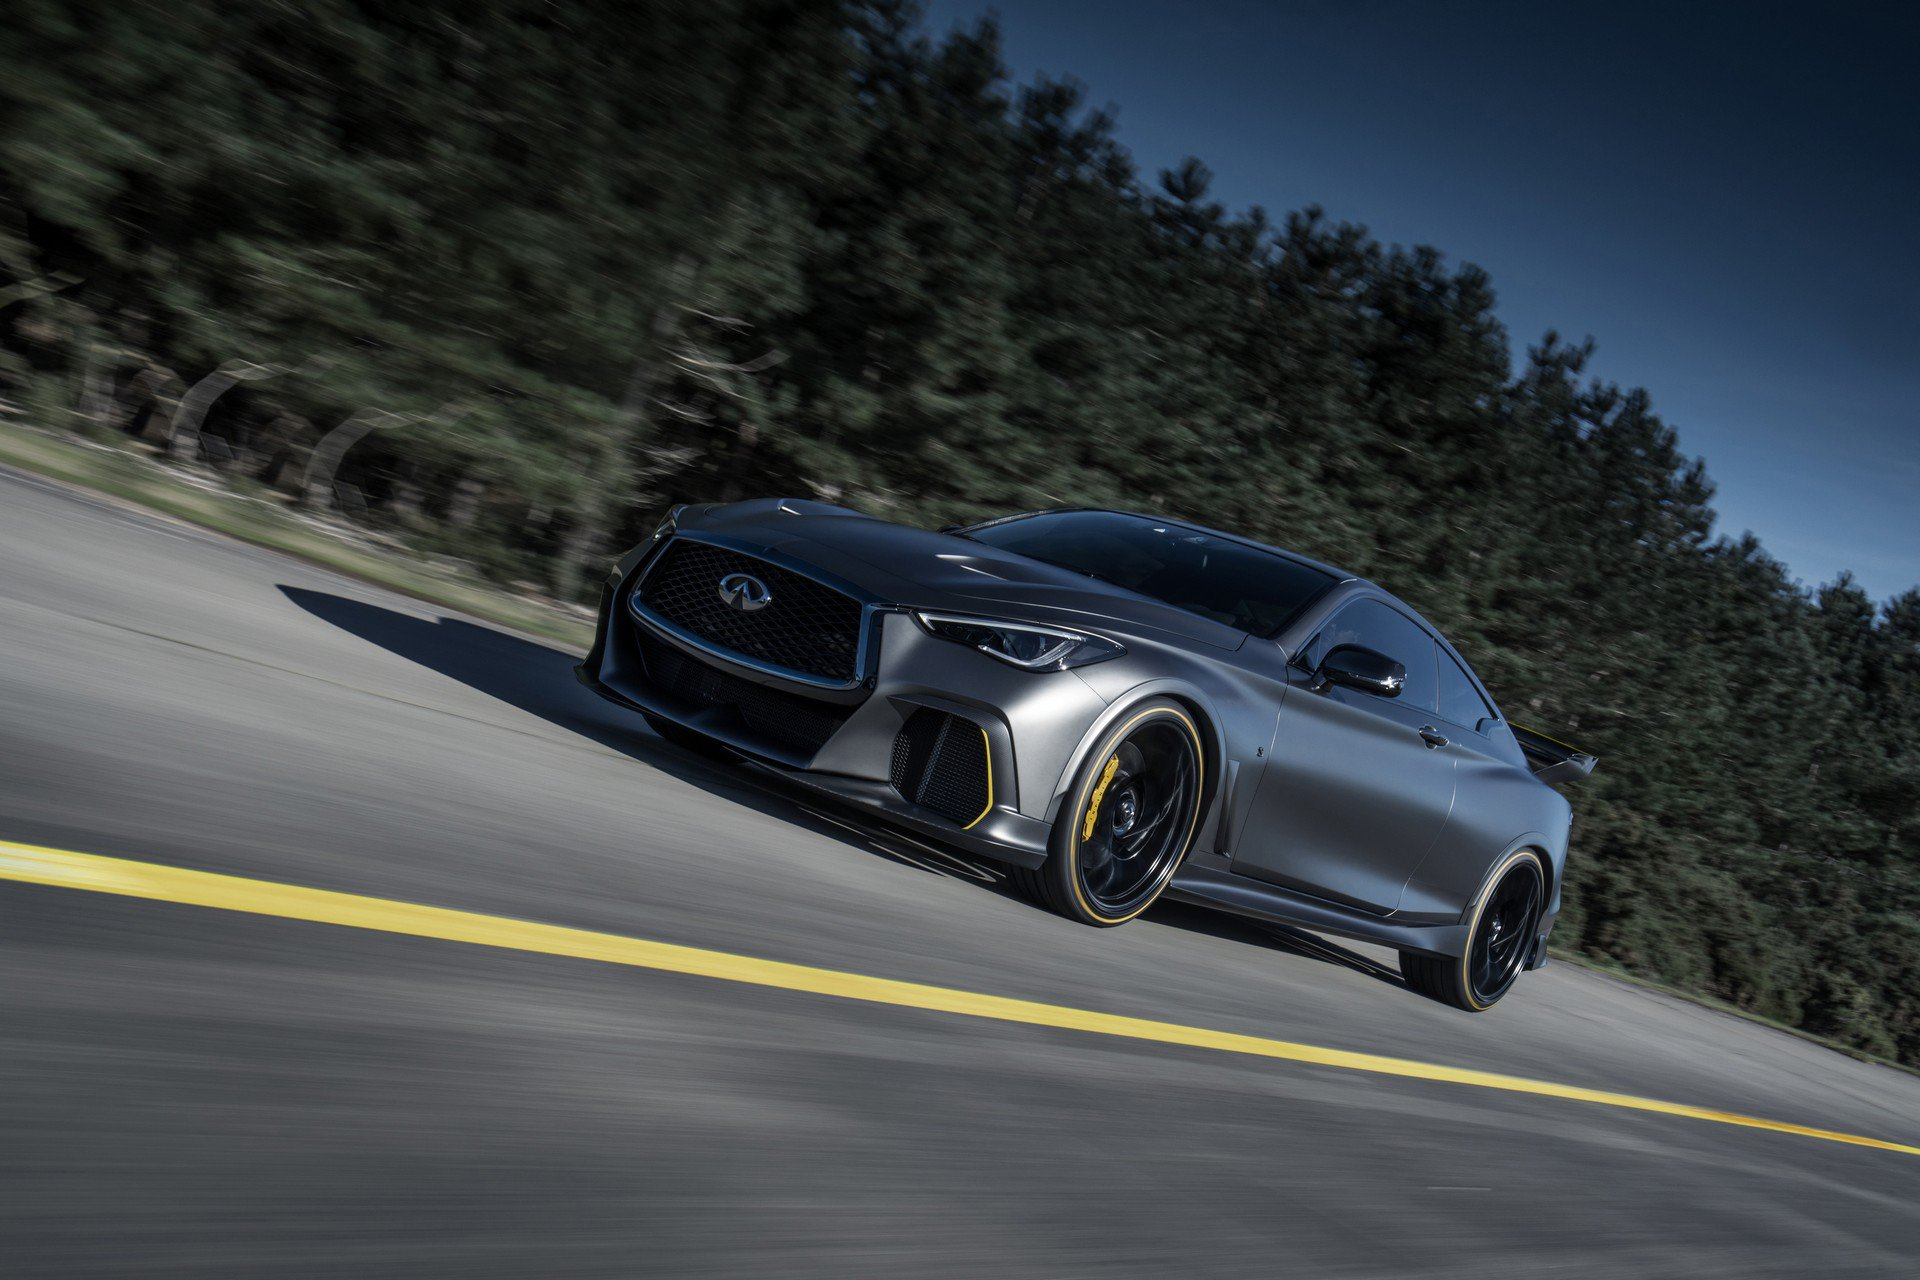 Infiniti Project Black S Prototype (27)